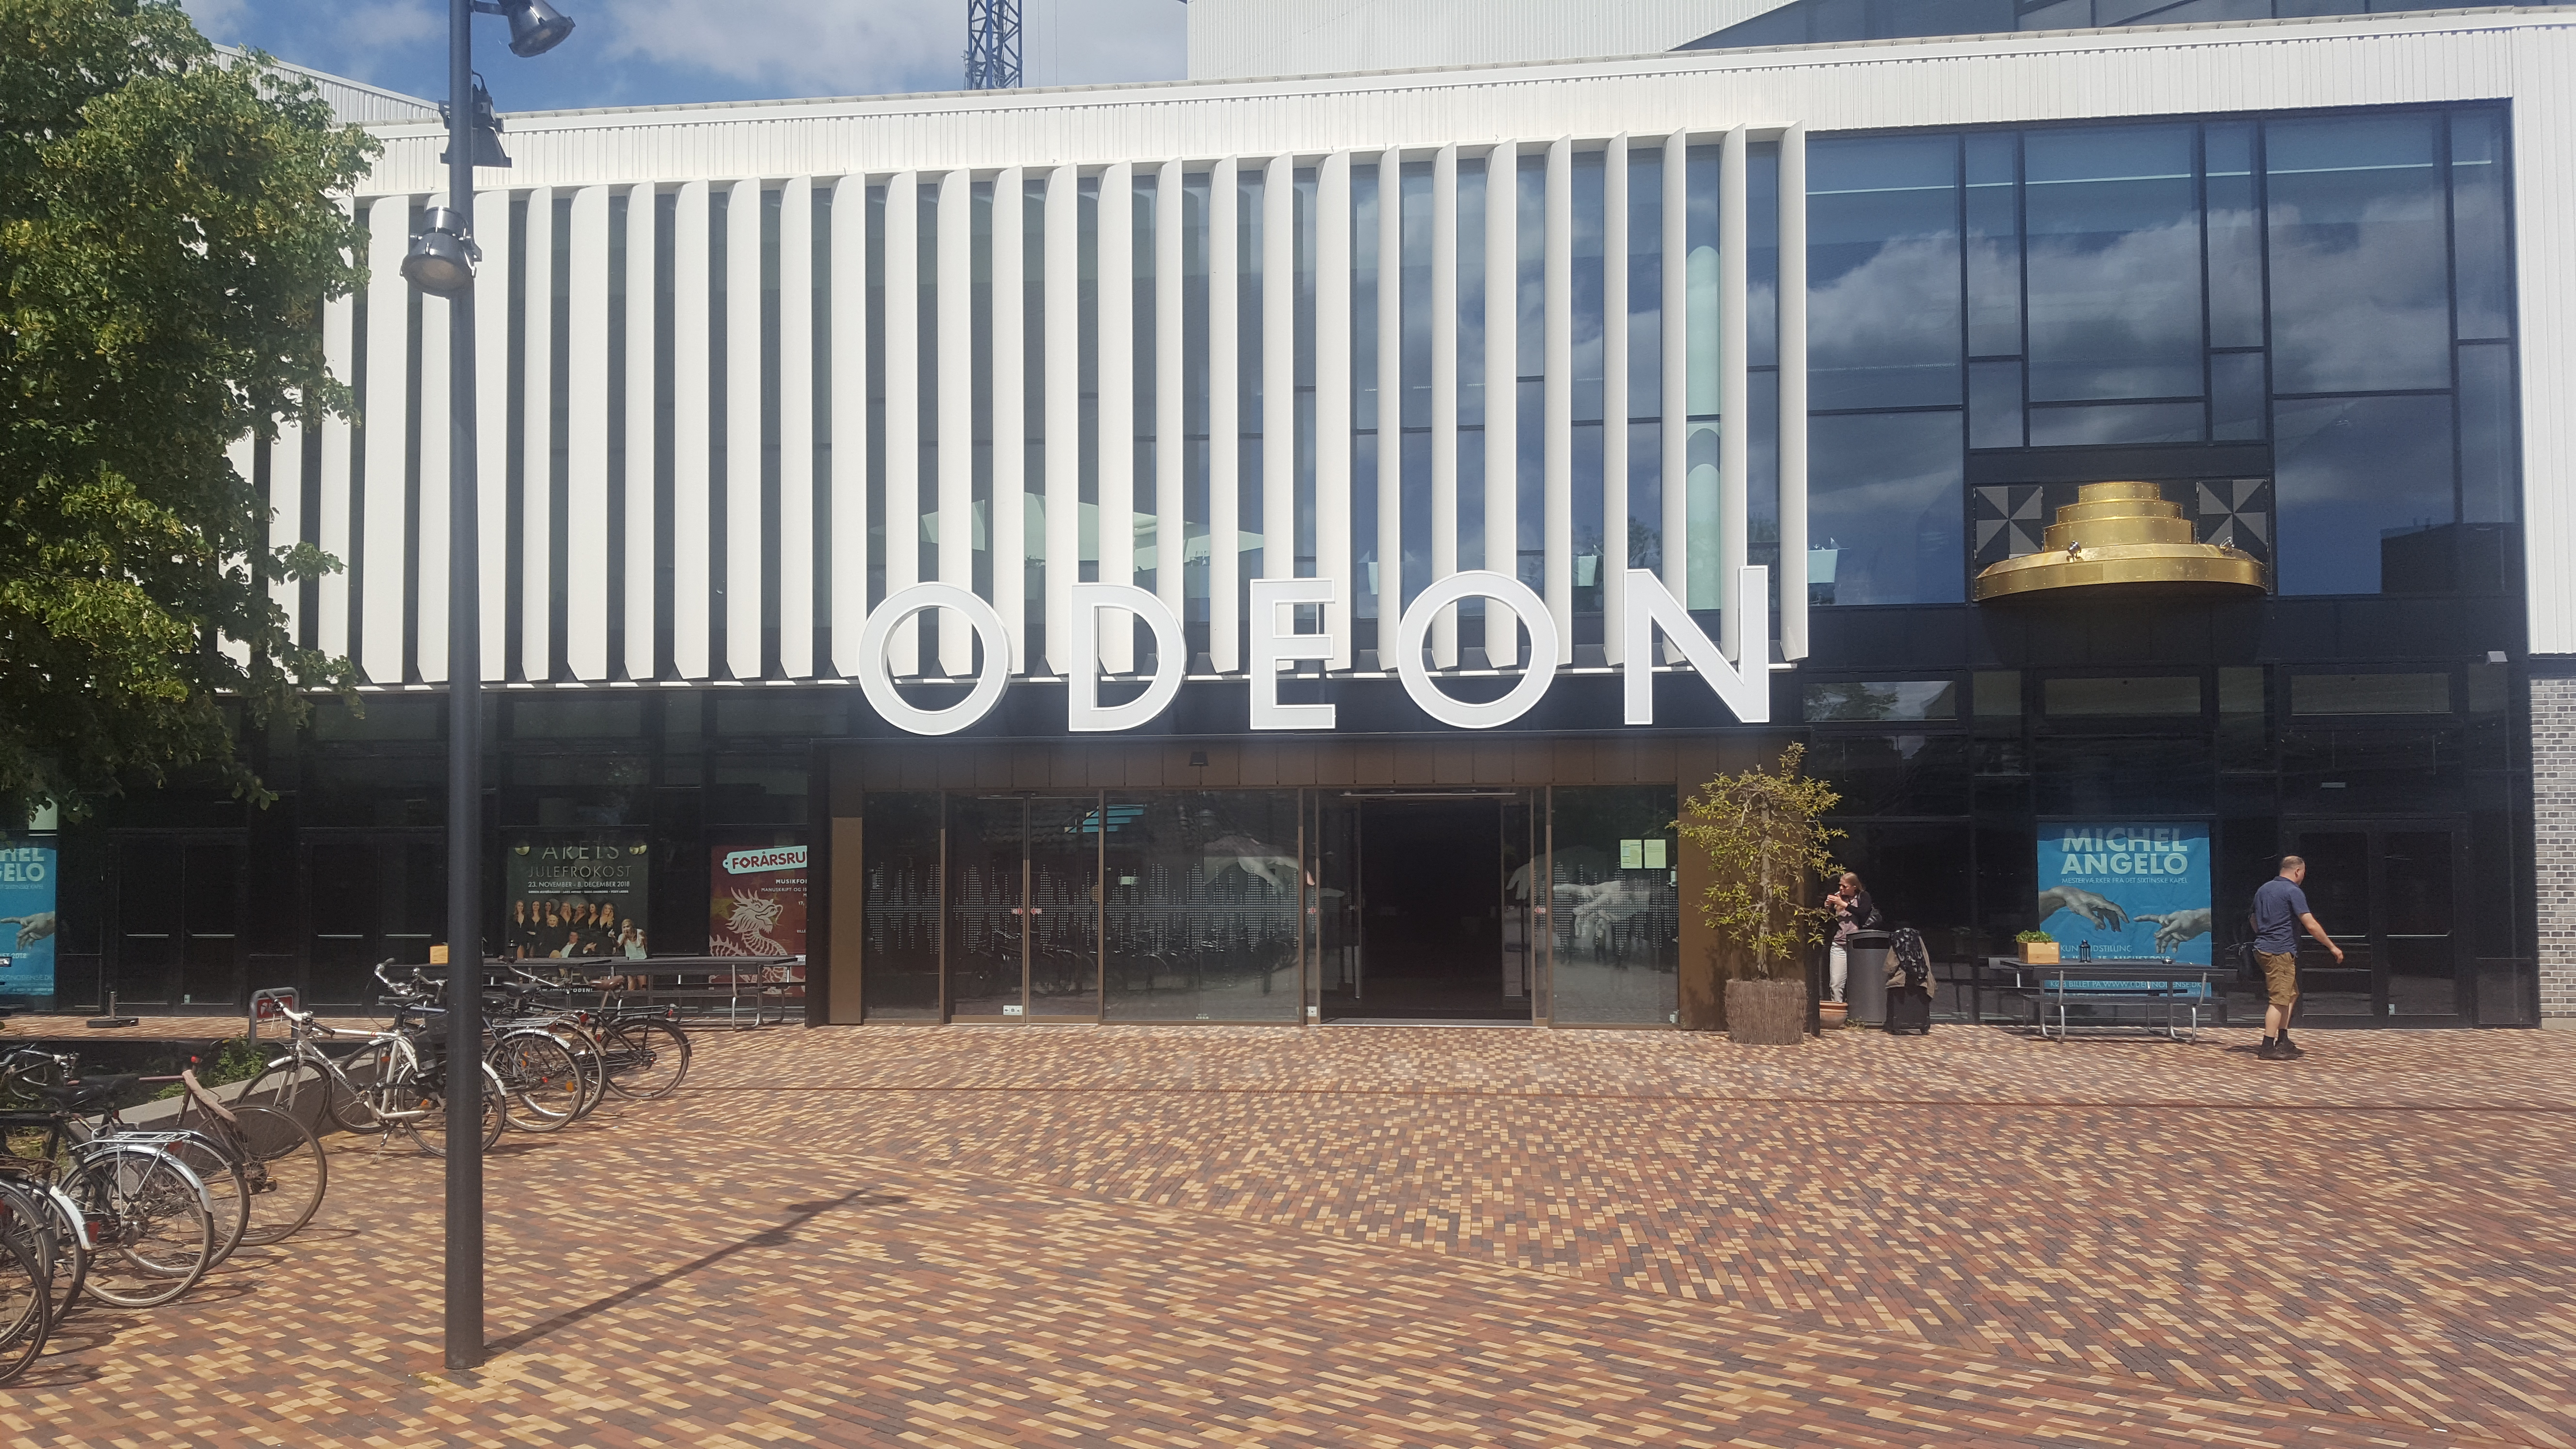 Odeon i Odense, front indgang